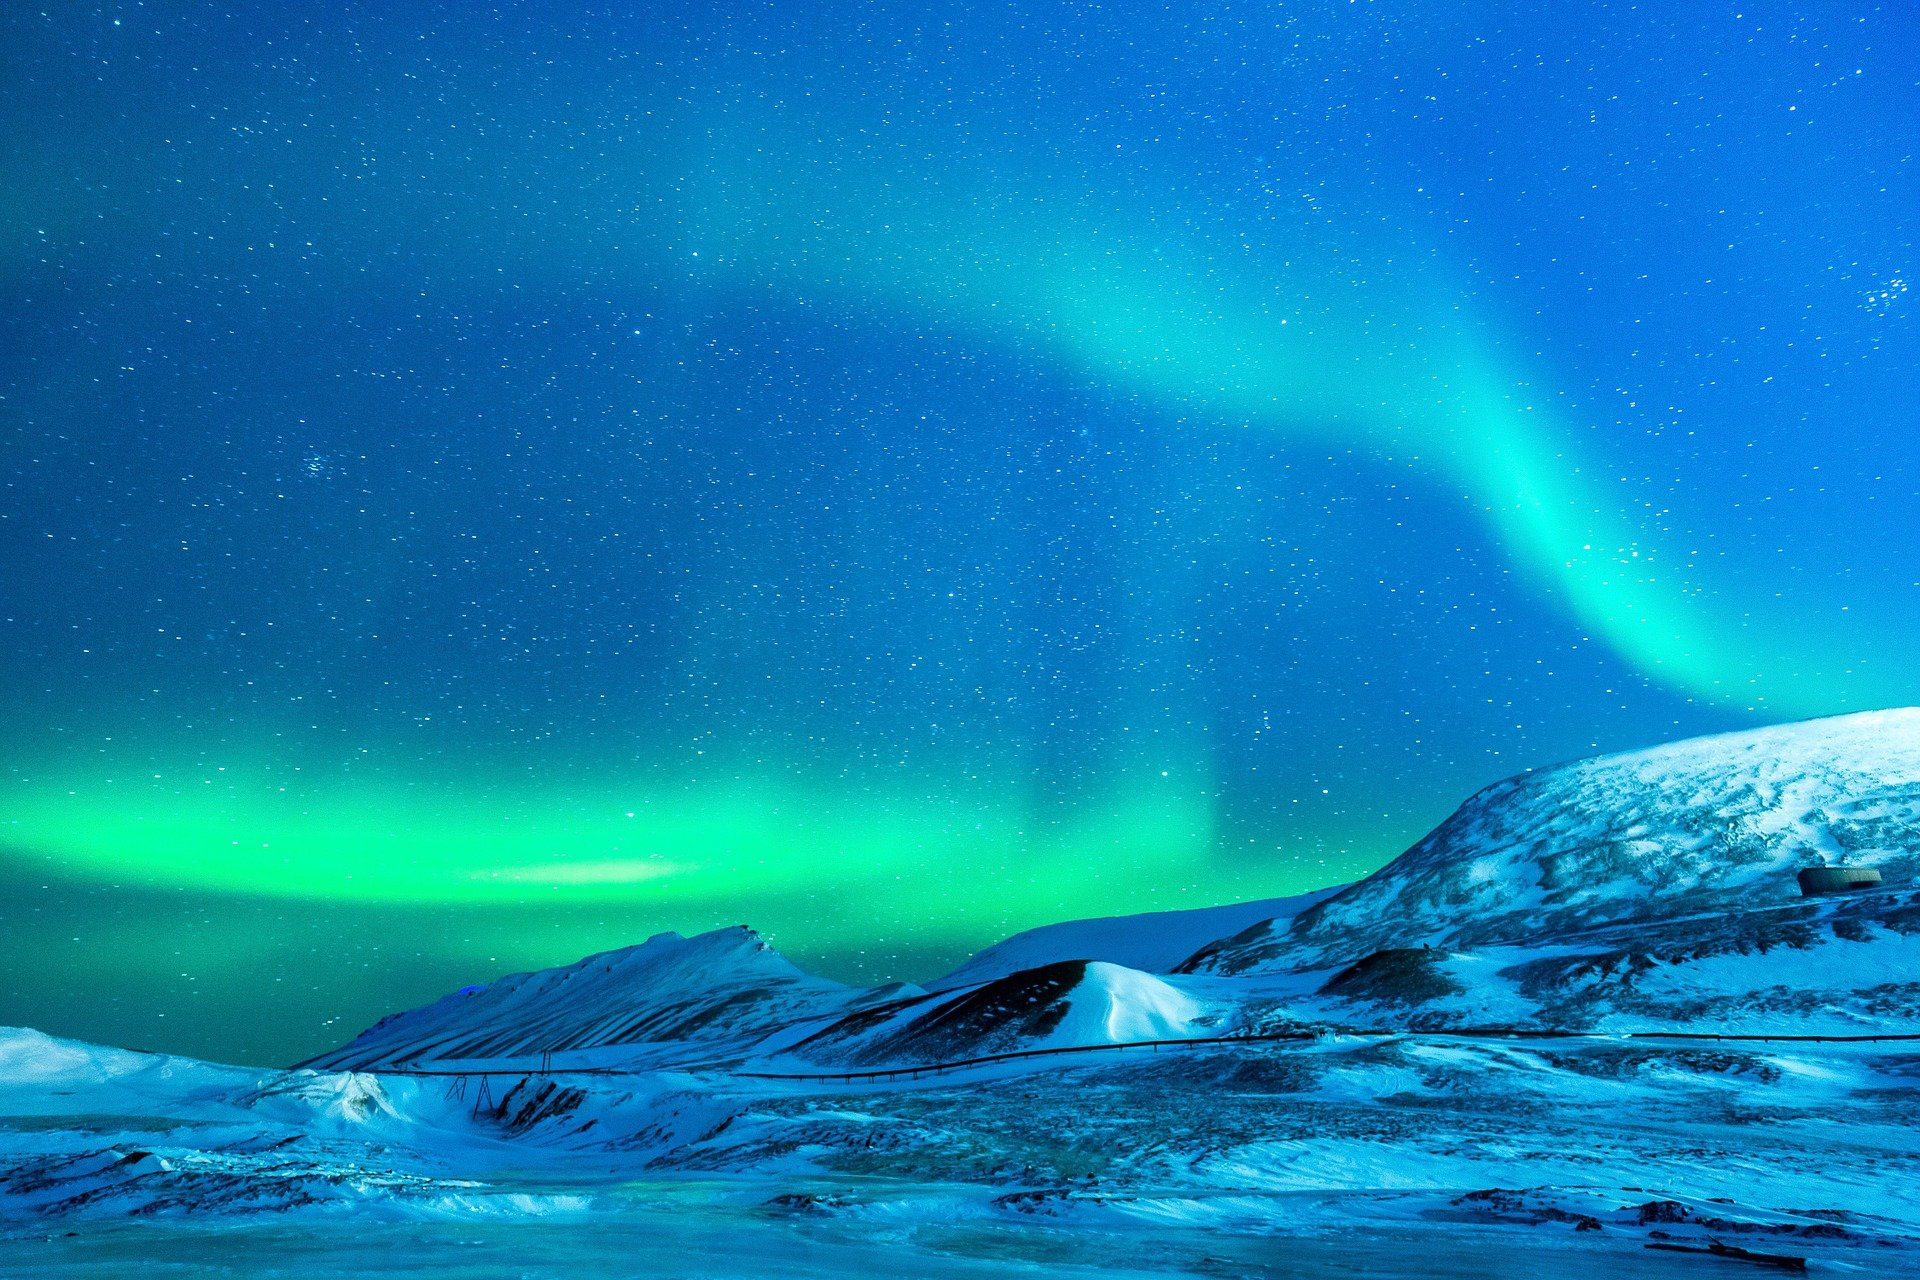 Australians could Experience the Northern Lights this week